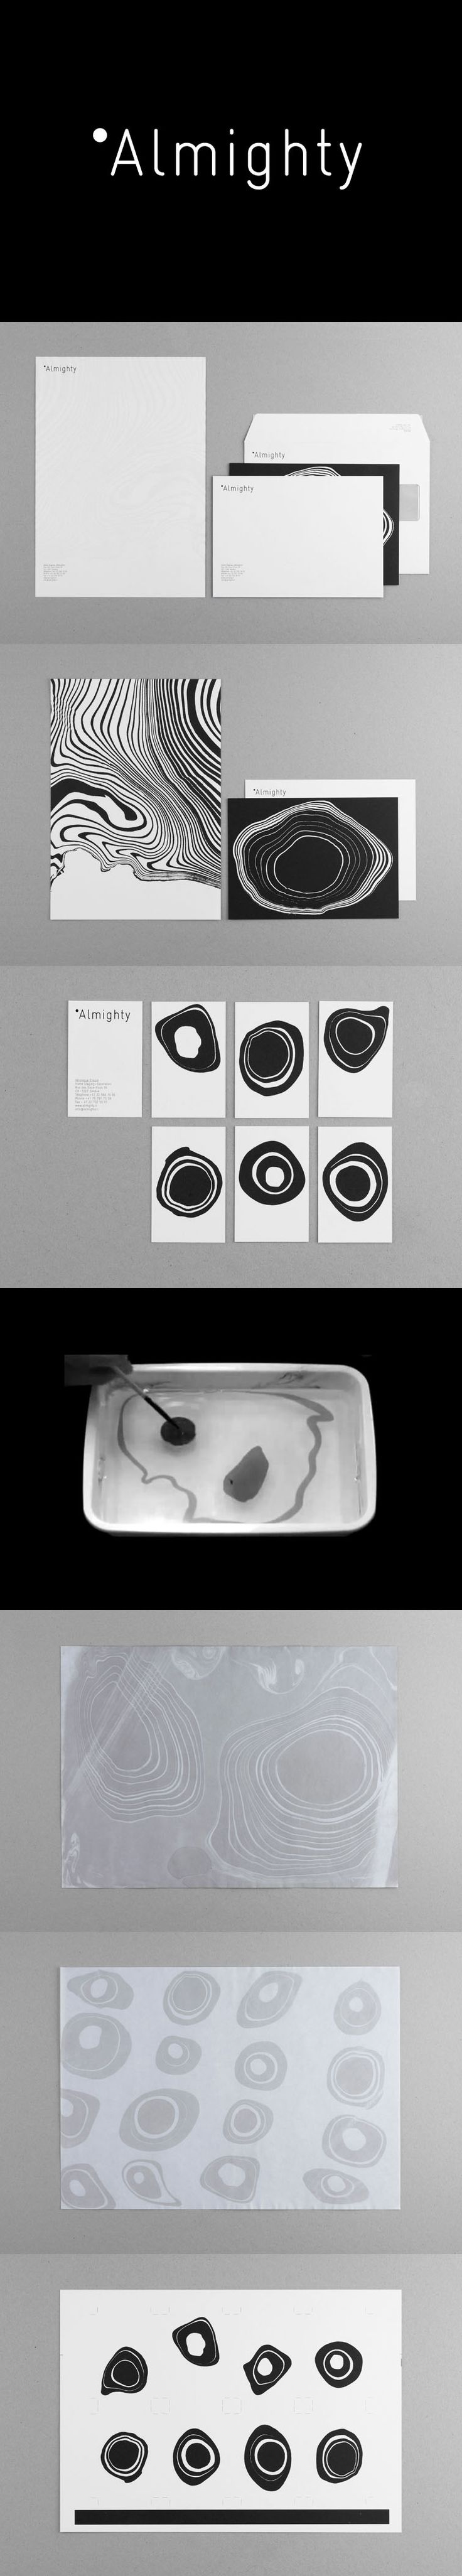 "Almighty / Demian Conrad Design / ""Almighty is a company specializing in interior design and home staging that needed a flexible and contemporary approach to its identity while still maintaining its classic traditions. We focused on the idea of decoration, and after some research we found an analogy between book covers and wallpaper. We set about creating a pattern of organic shapes using the Japanese technique of Suminagashi marbling"" / #generative #analog"